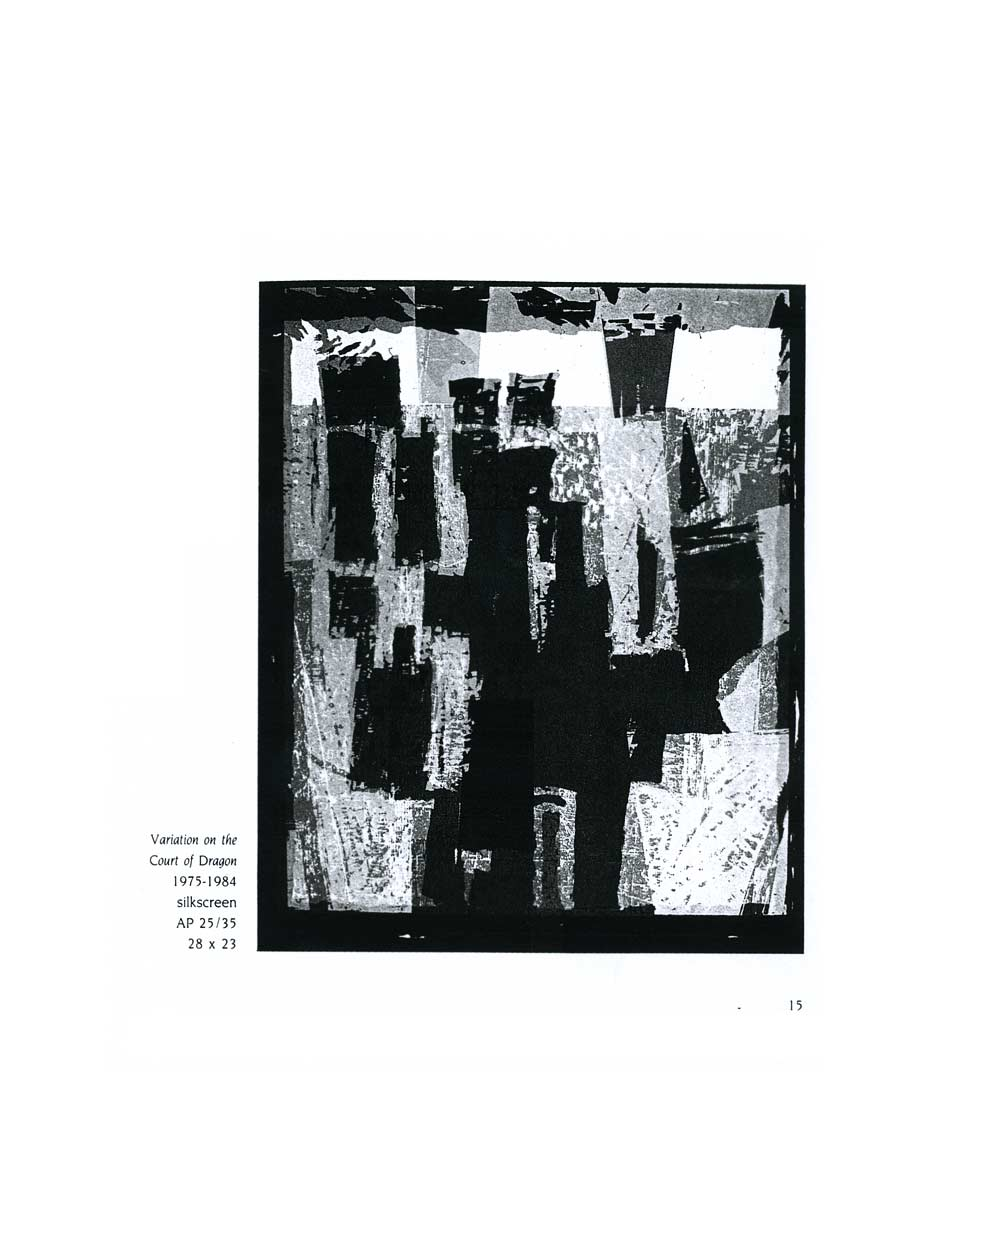 Seong Moy: Color Prints by Tony Vevers, pg 11